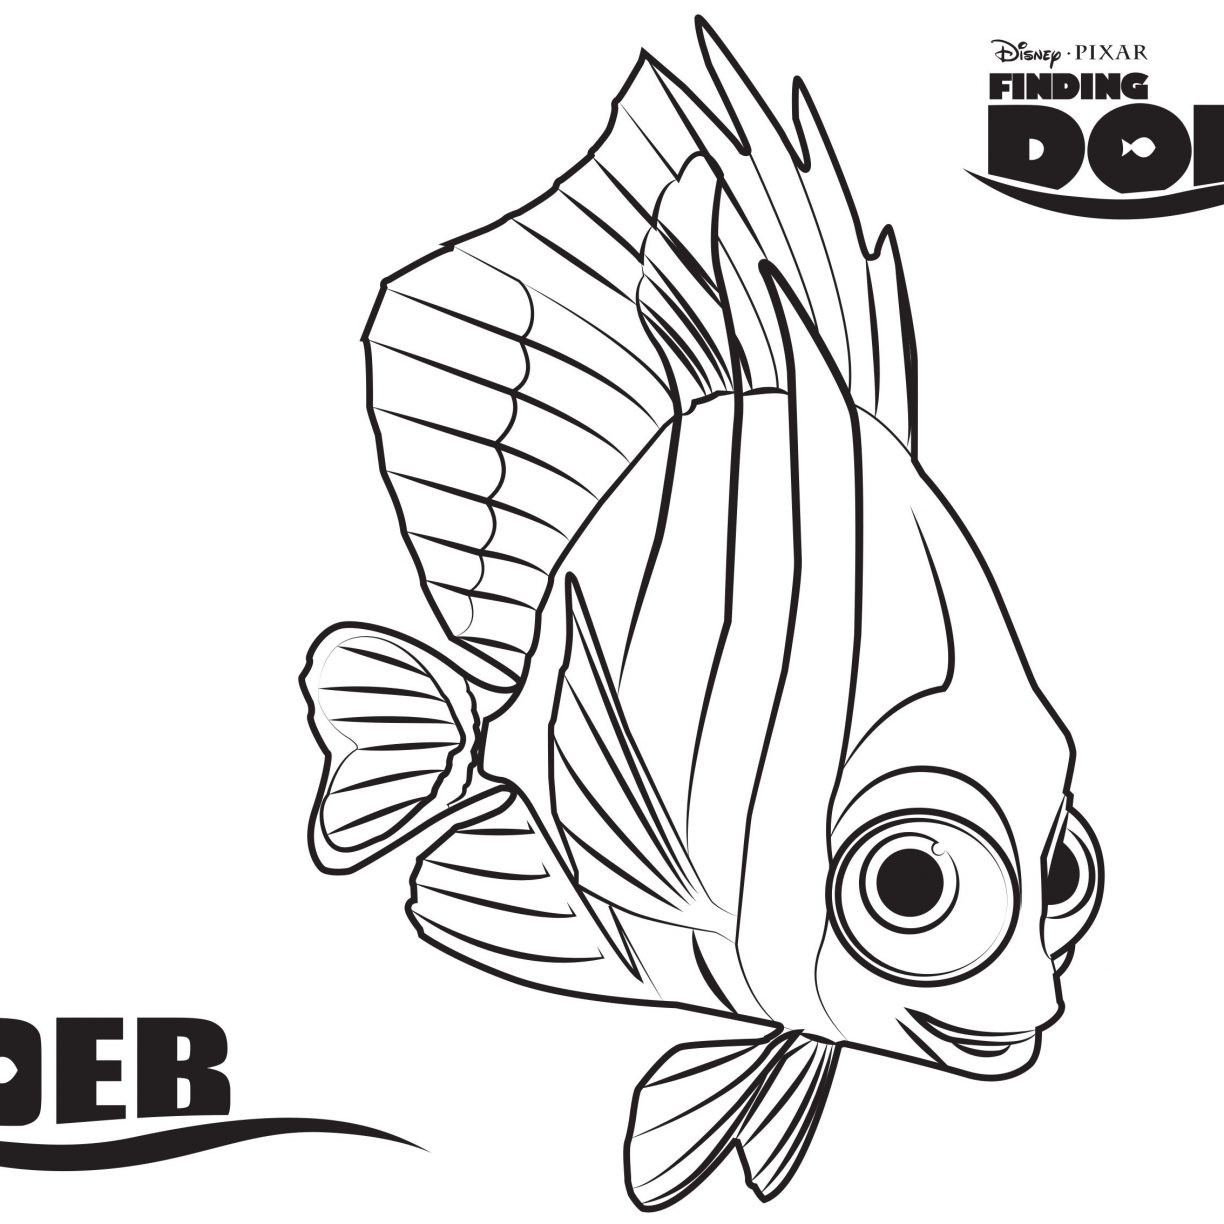 Bruce From Finding Nemo Coloring Pages At Getdrawings Com Free For